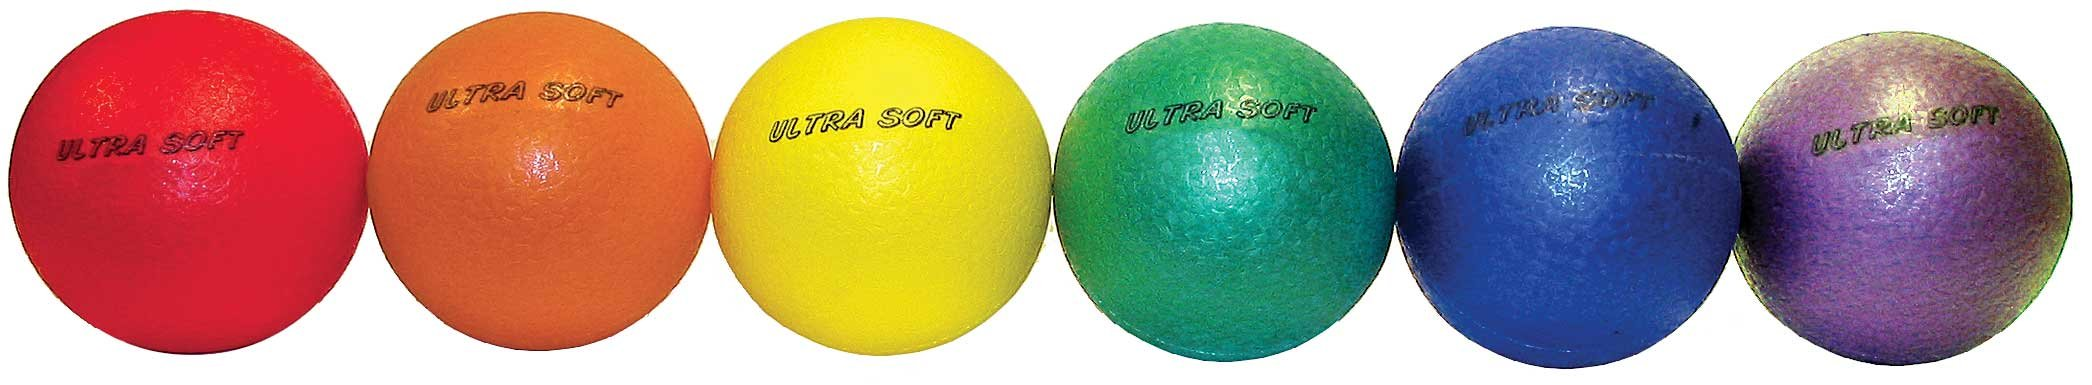 Great Lakes Sports Ultra Soft Playground Ball Set by Great Lakes Sports